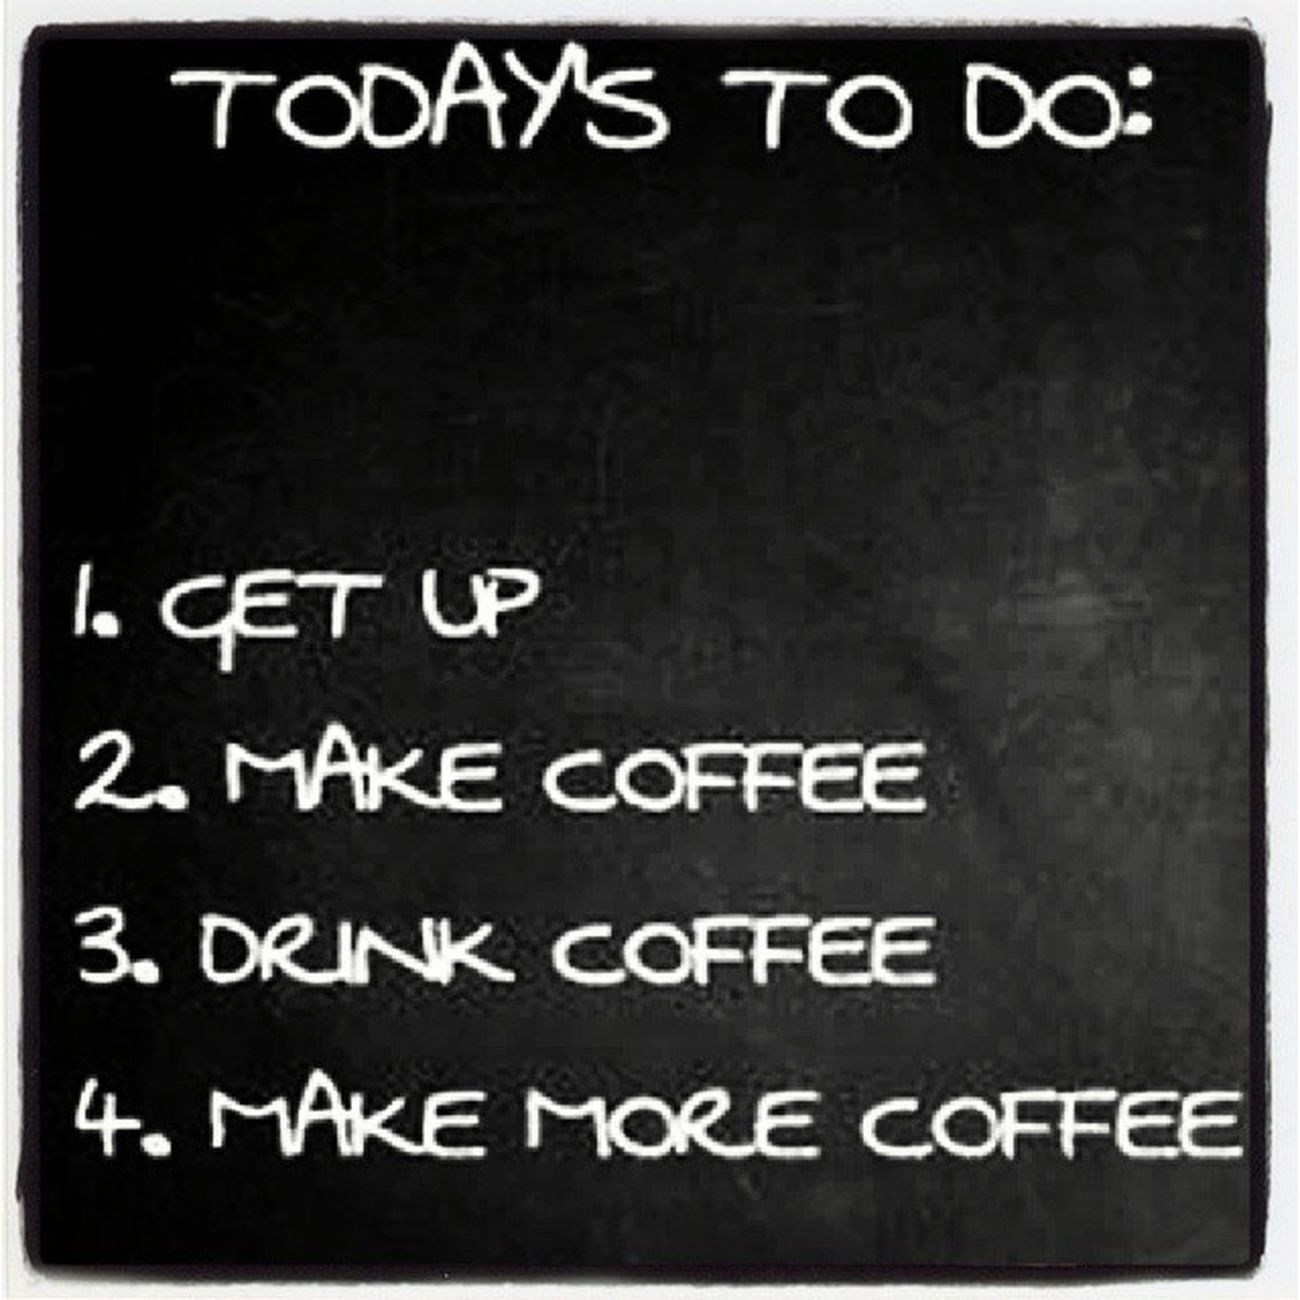 Sounds about right for my day. Morecoffee